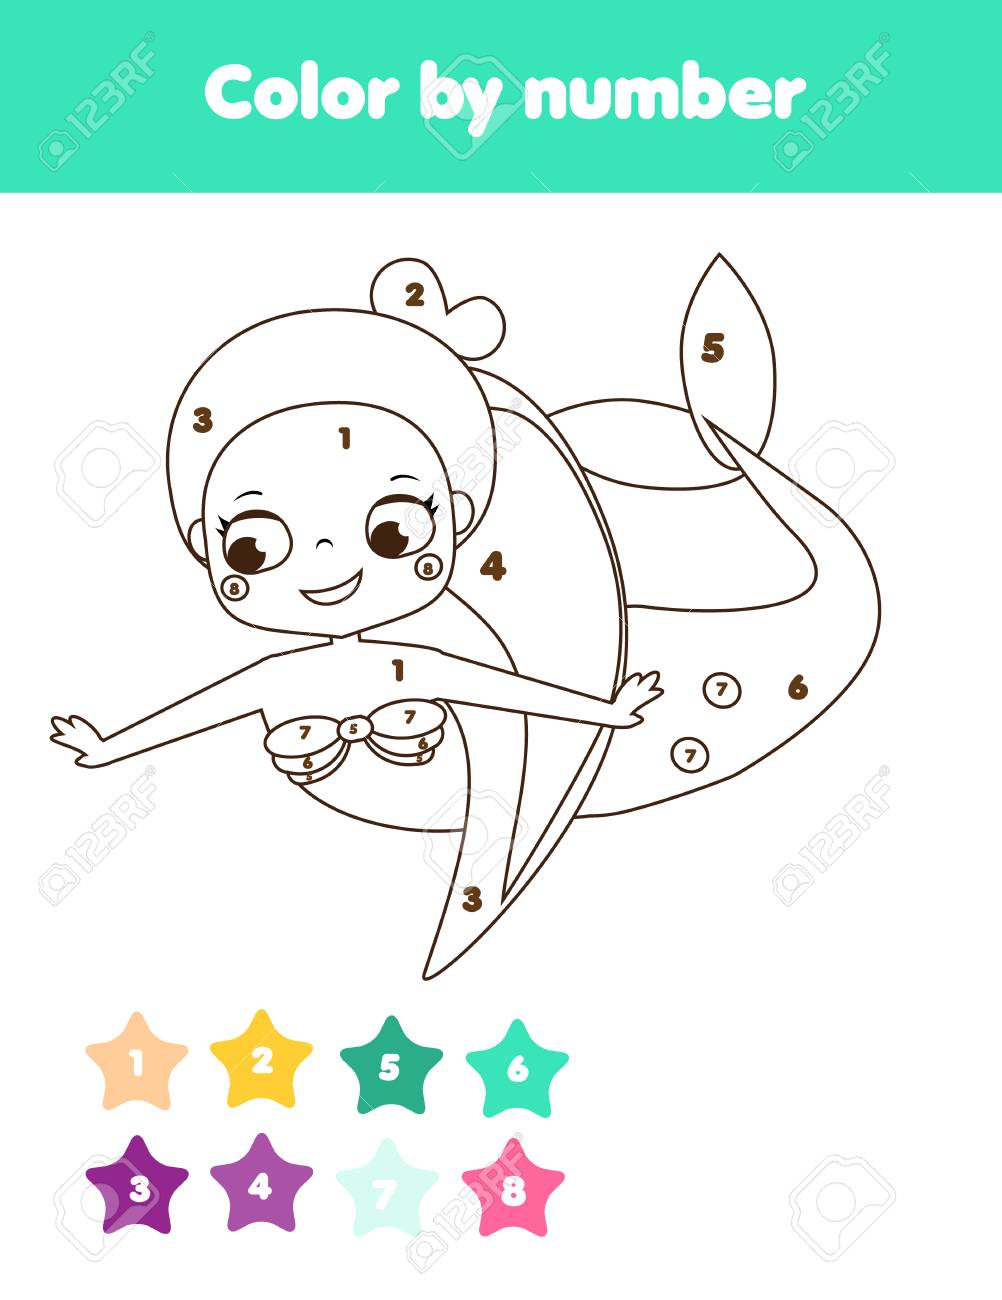 Children Educational Game Coloring Page With Cute Mermaid Color Royalty Free Cliparts Vectors And Stock Illustration Image 99014805